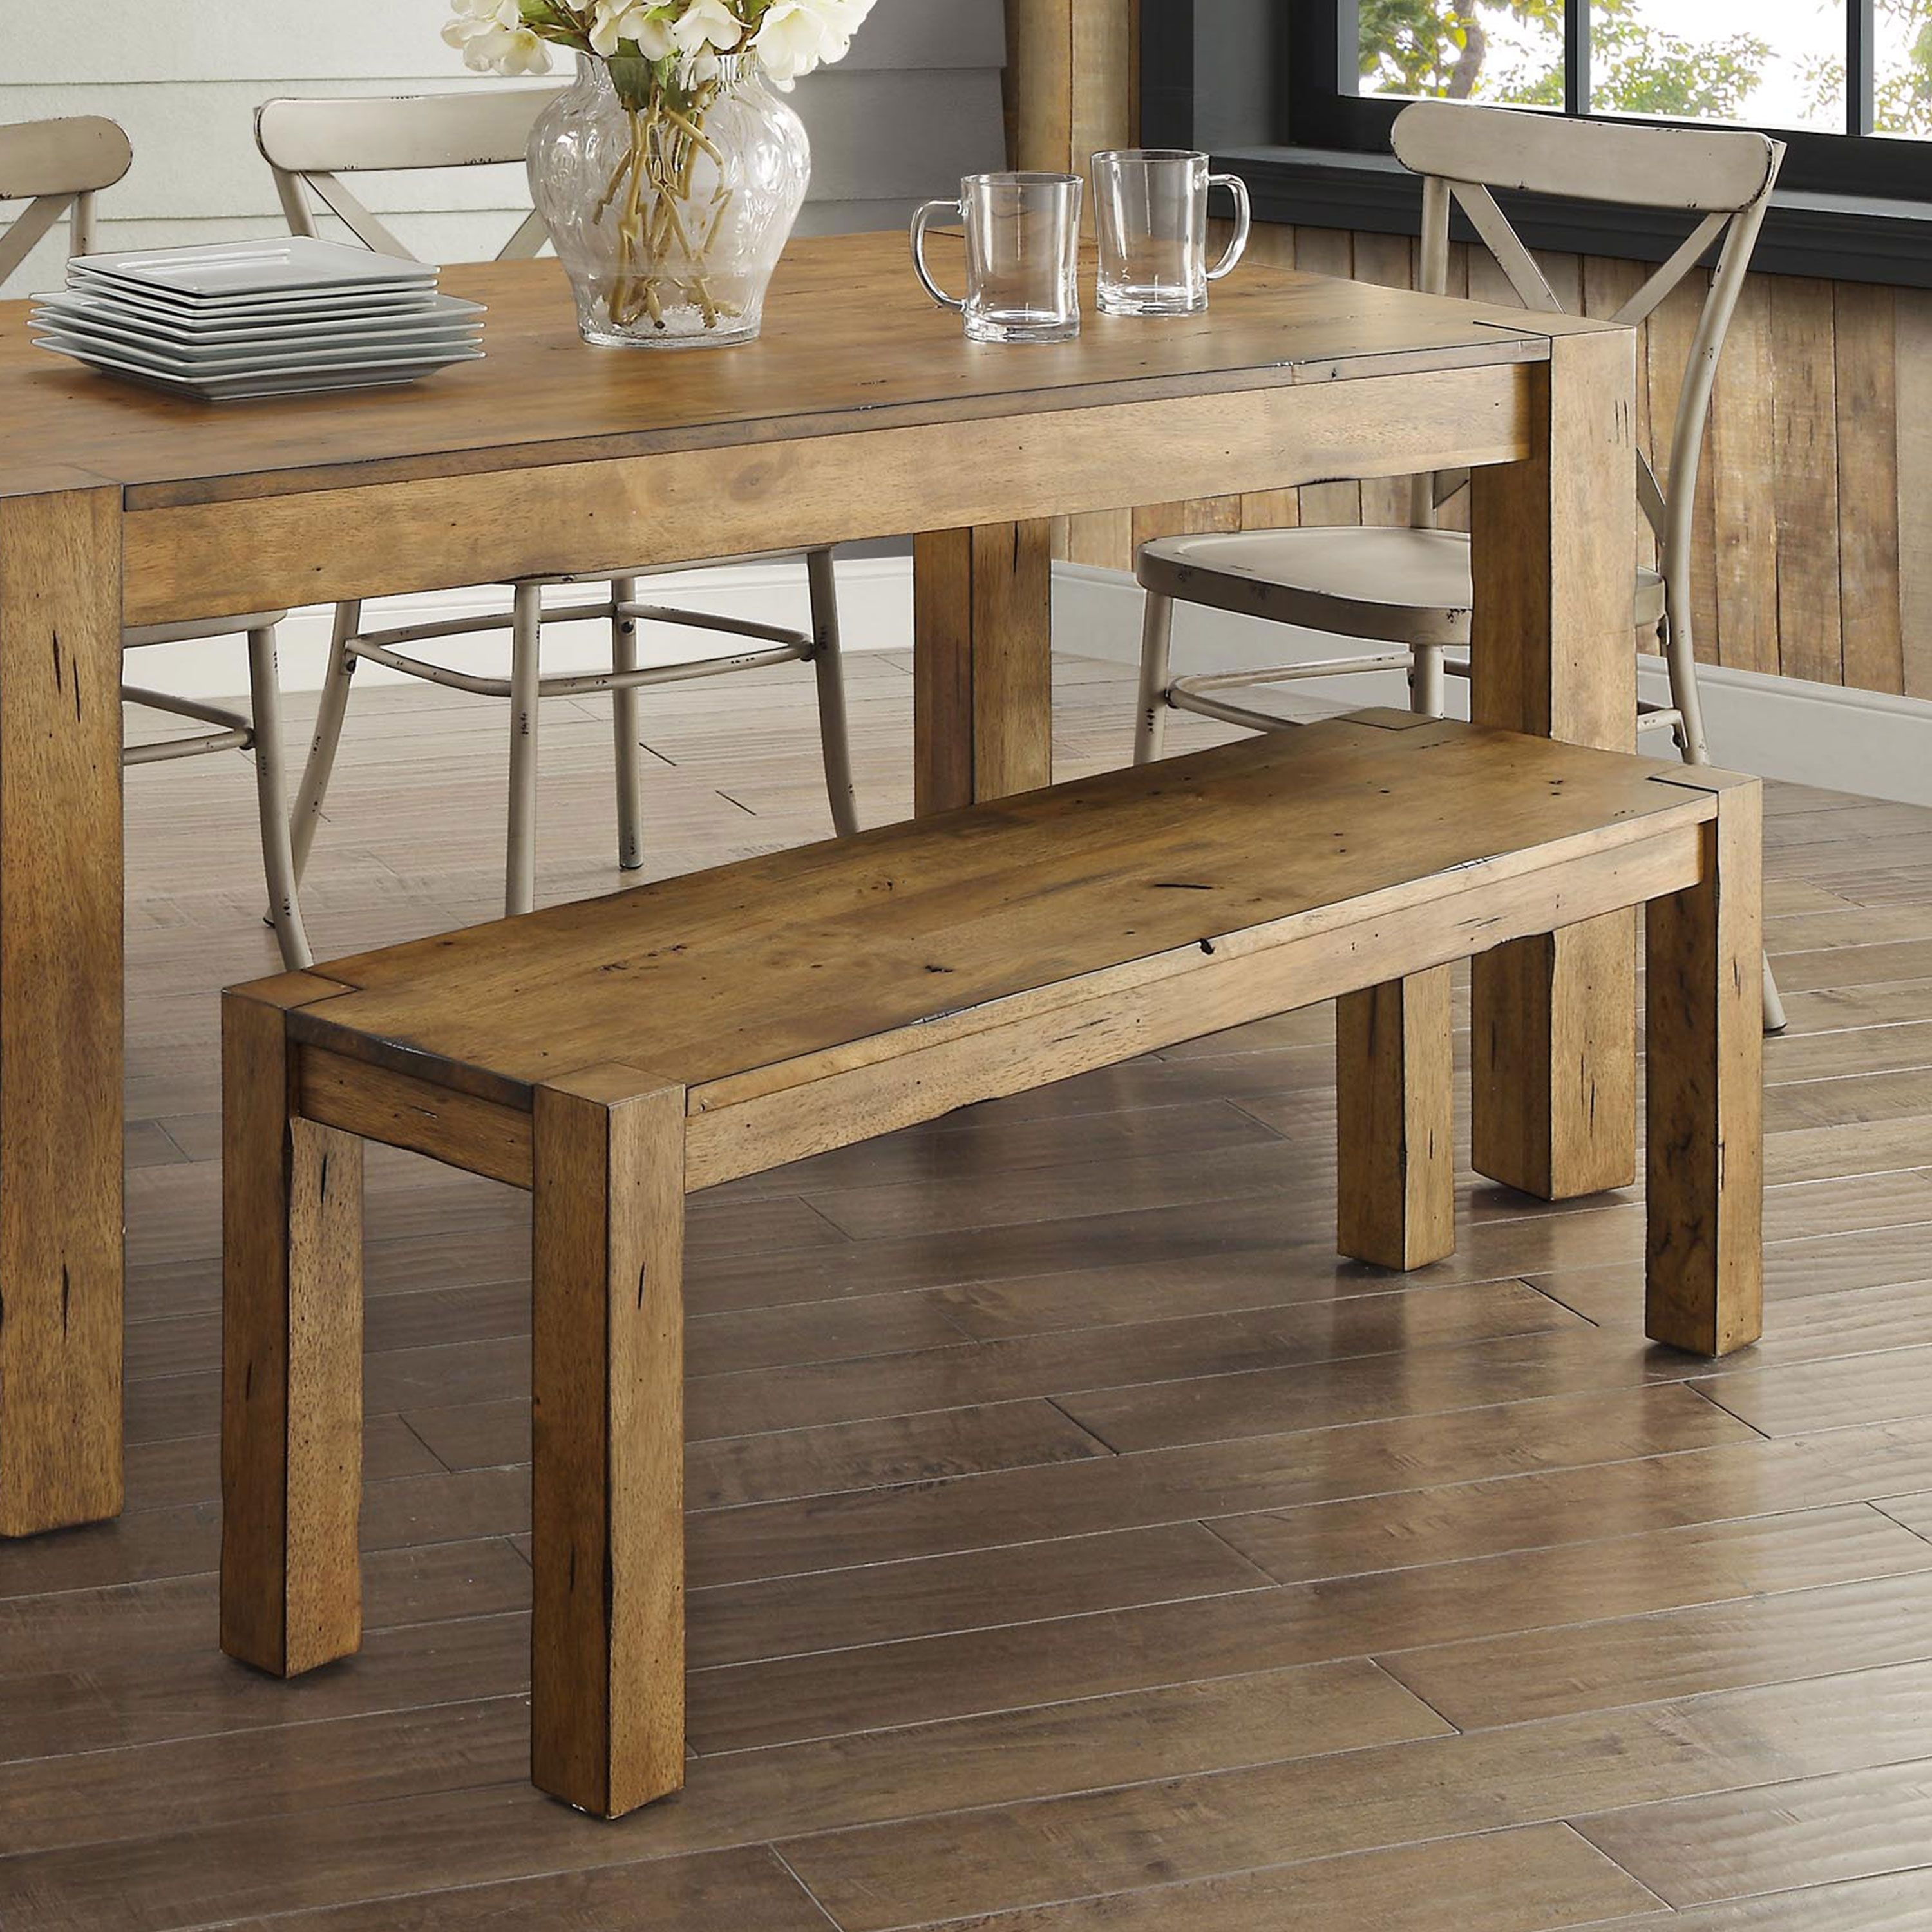 Free 2 Day Shipping Buy Better Homes Gardens Bryant Solid Wood Dining Bench Rustic Brown At Walmart Dining Table With Bench Wood Dining Bench Dining Bench